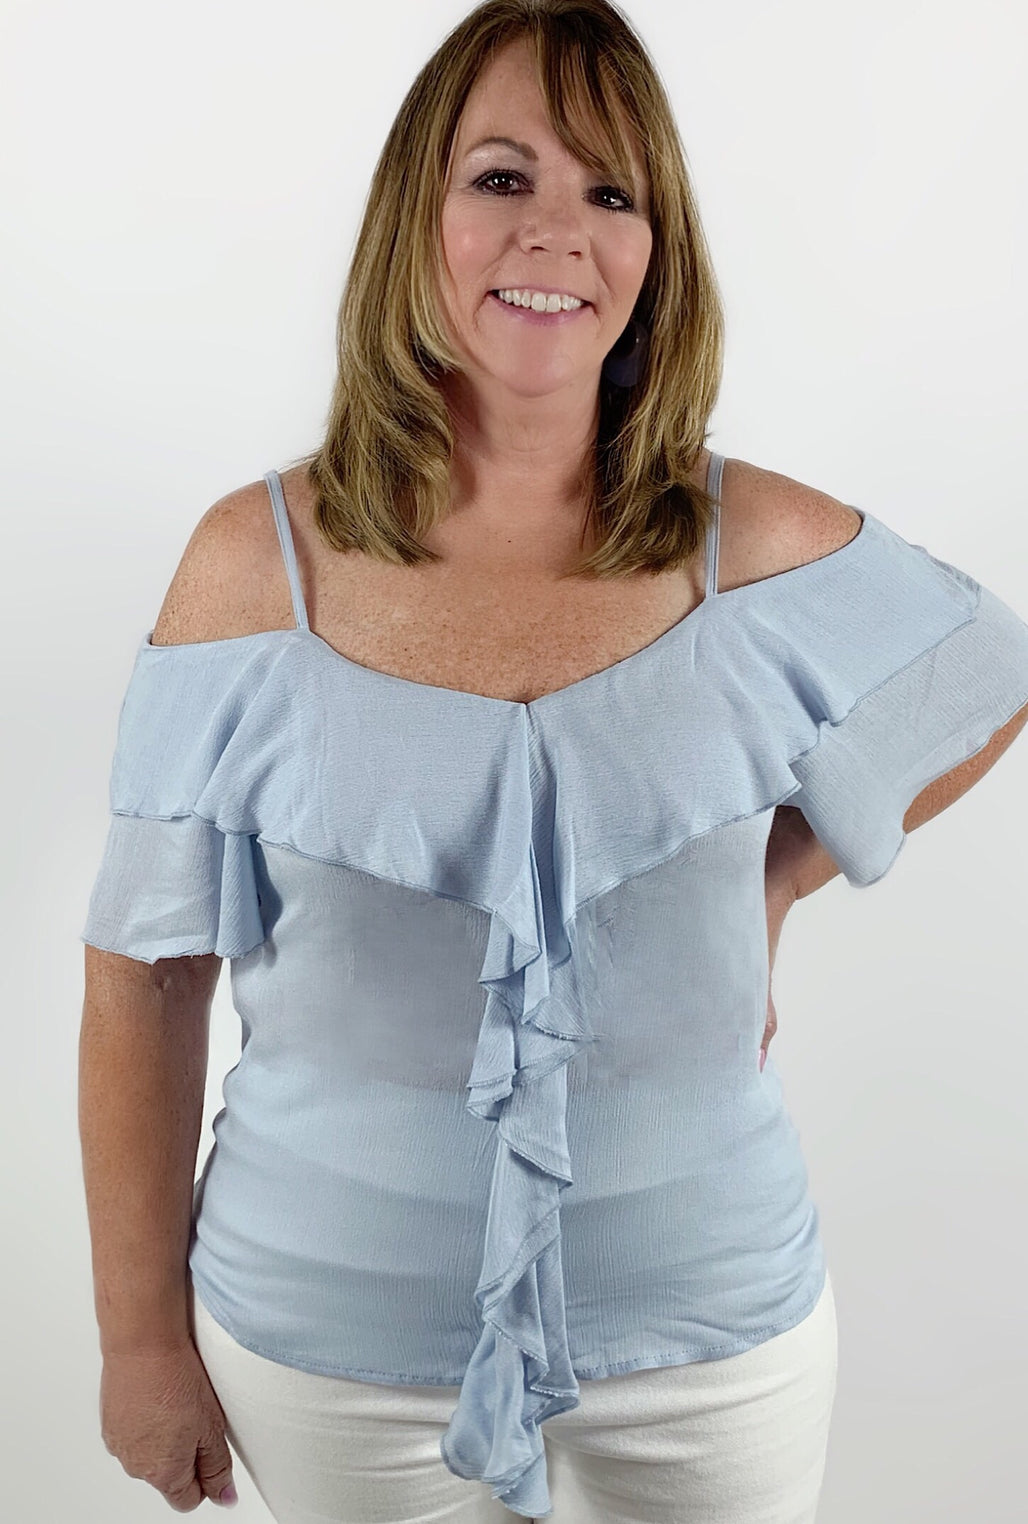 Bailey Blue Top - Bellamie Boutique